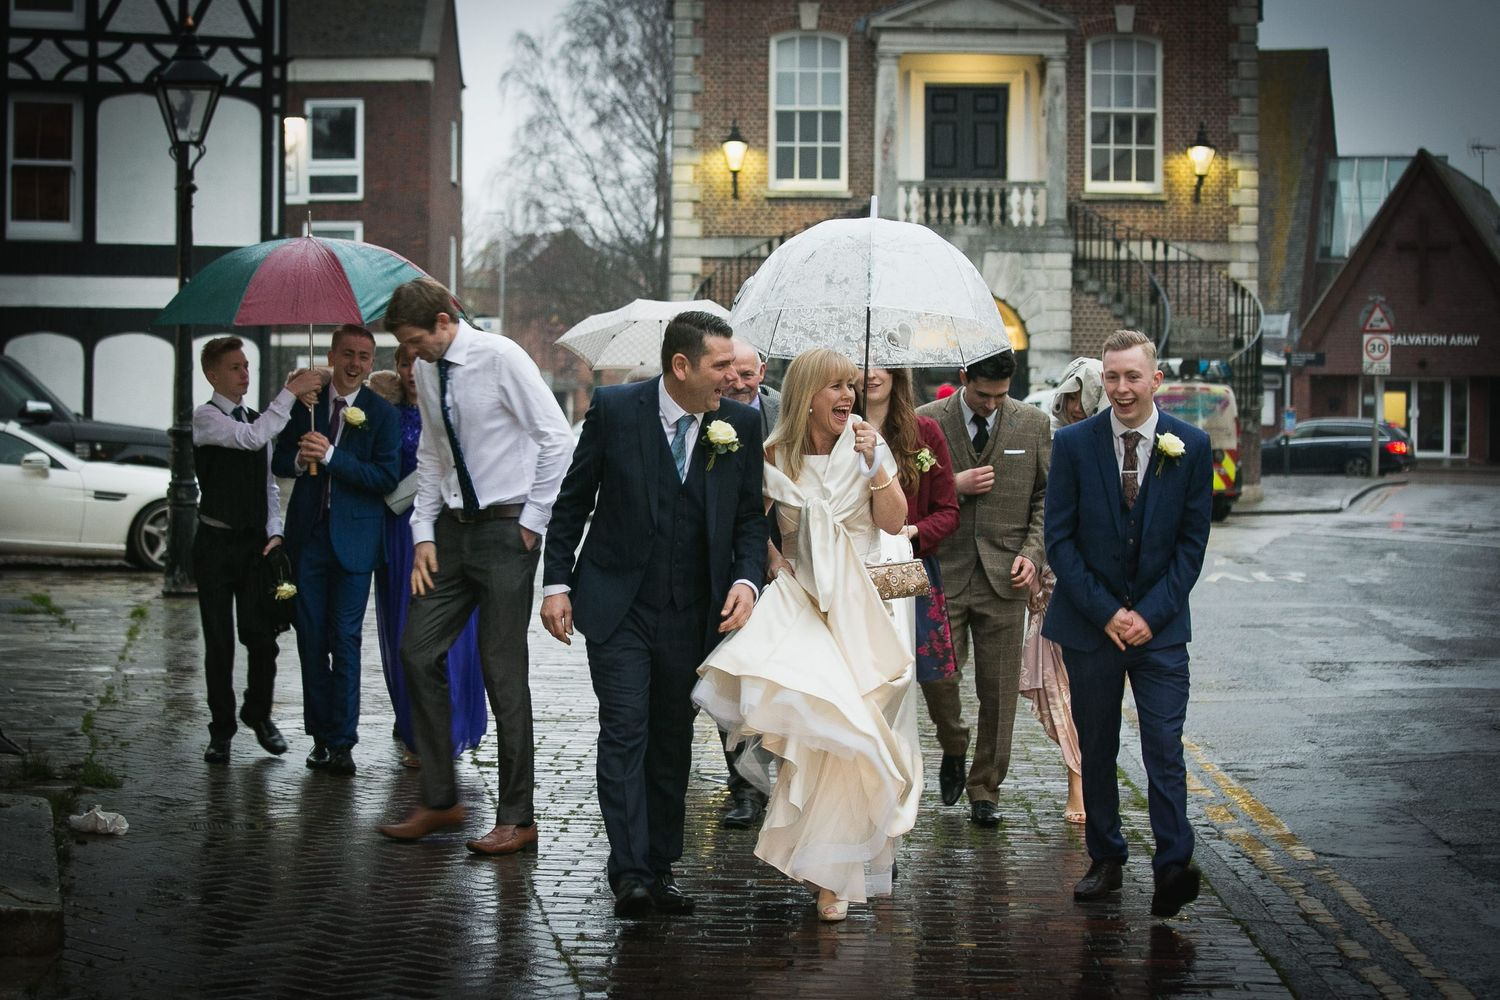 Bride and groom lead their guests through the rain on Poole Quay